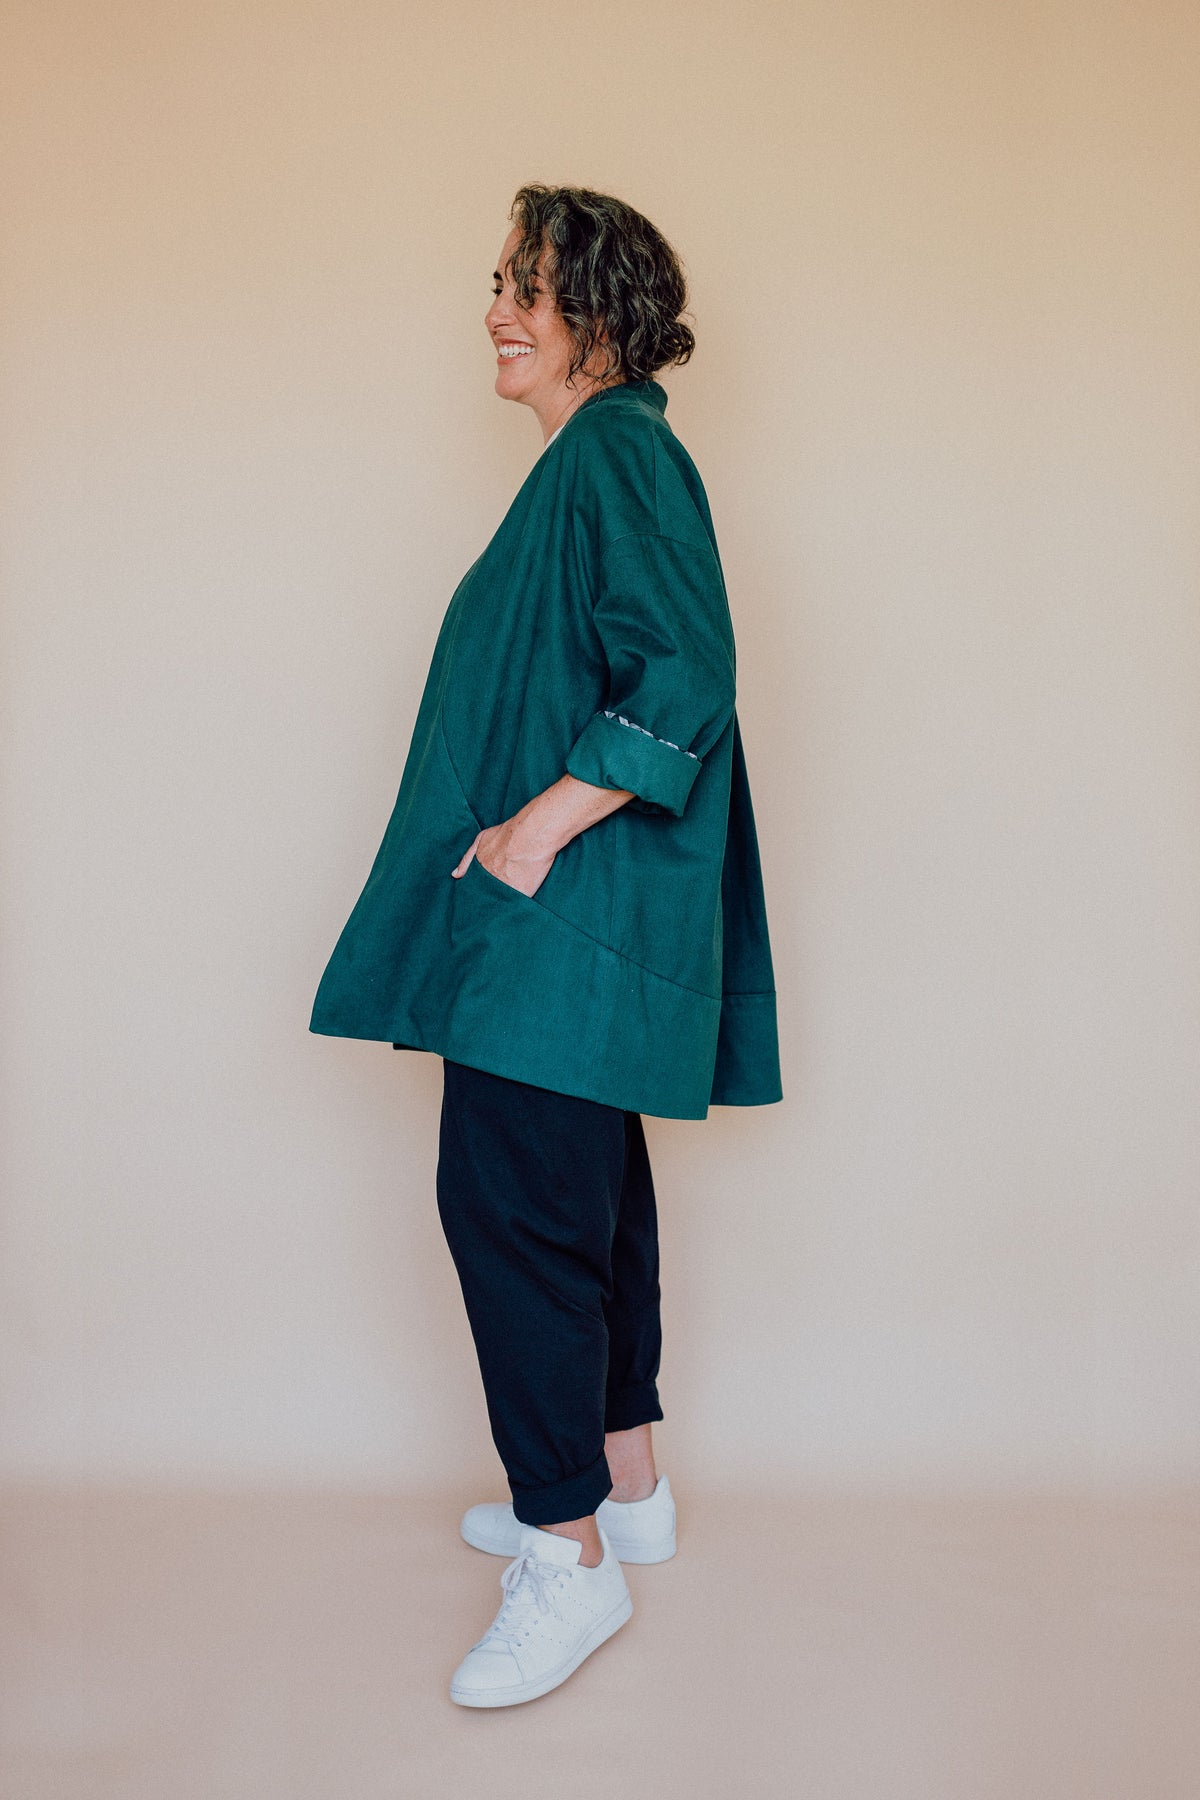 Flynn Jacket Sewing Pattern | In The Folds - MaaiDesign